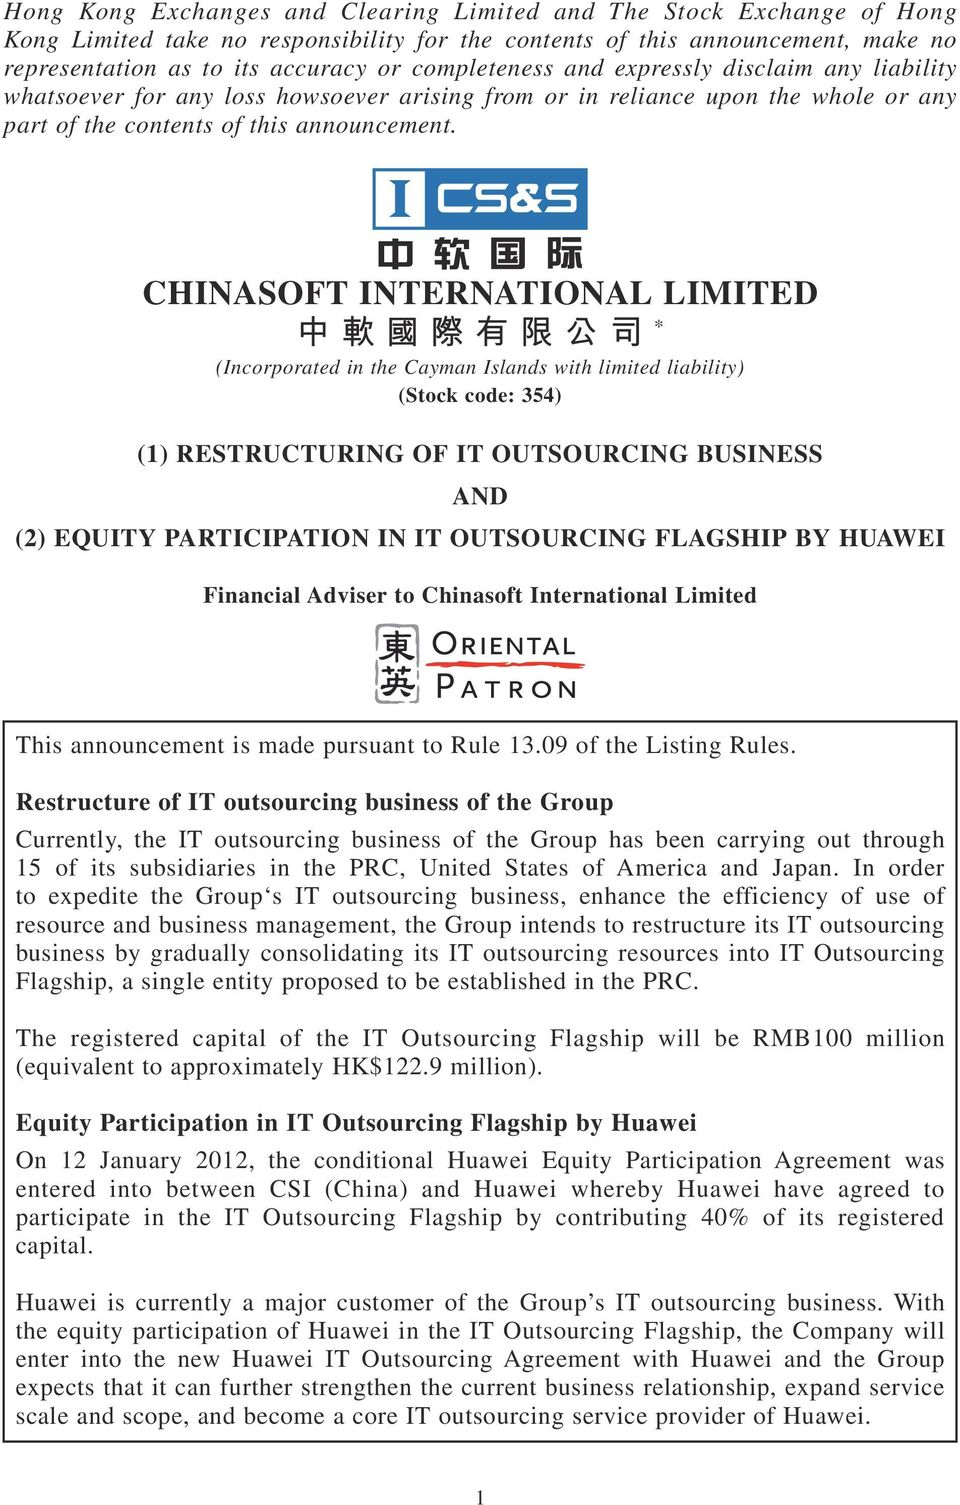 CHINASOFT INTERNATIONAL LIMITED 中 軟 國 際 有 限 公 司 * (Incorporated in the Cayman Islands with limited liability) (Stock code: 354) (1) RESTRUCTURING OF IT OUTSOURCING BUSINESS AND (2) EQUITY